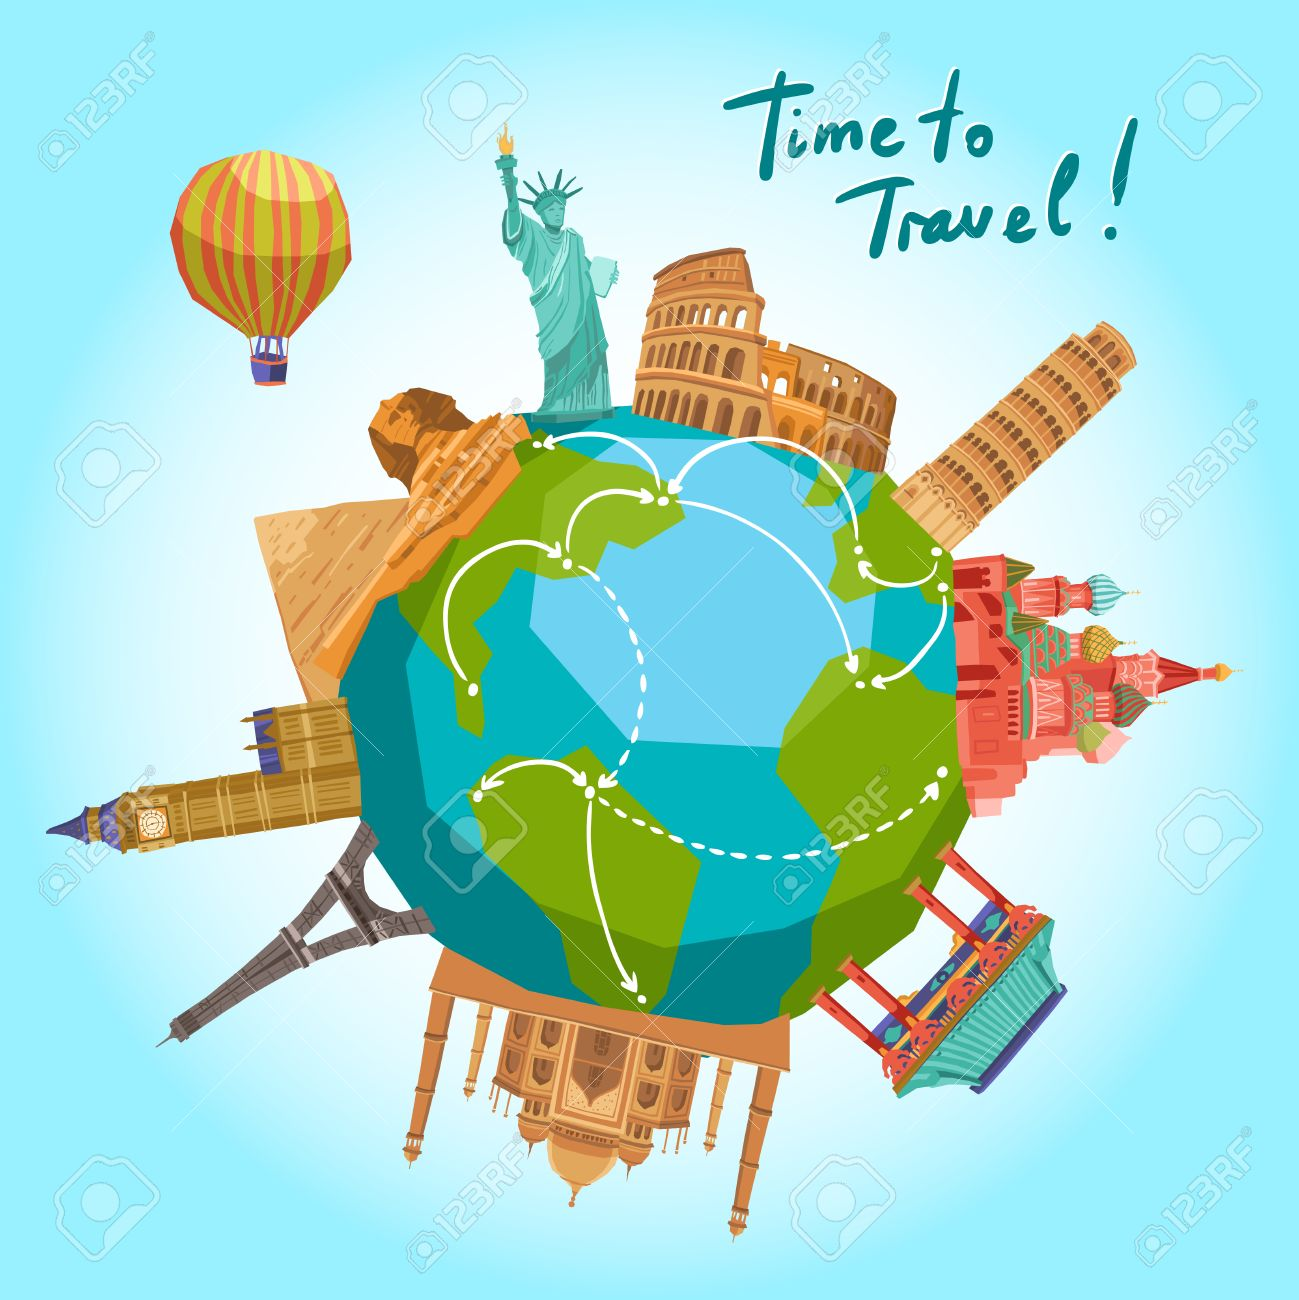 World Travel Clipart & Clip Art Images #32737.